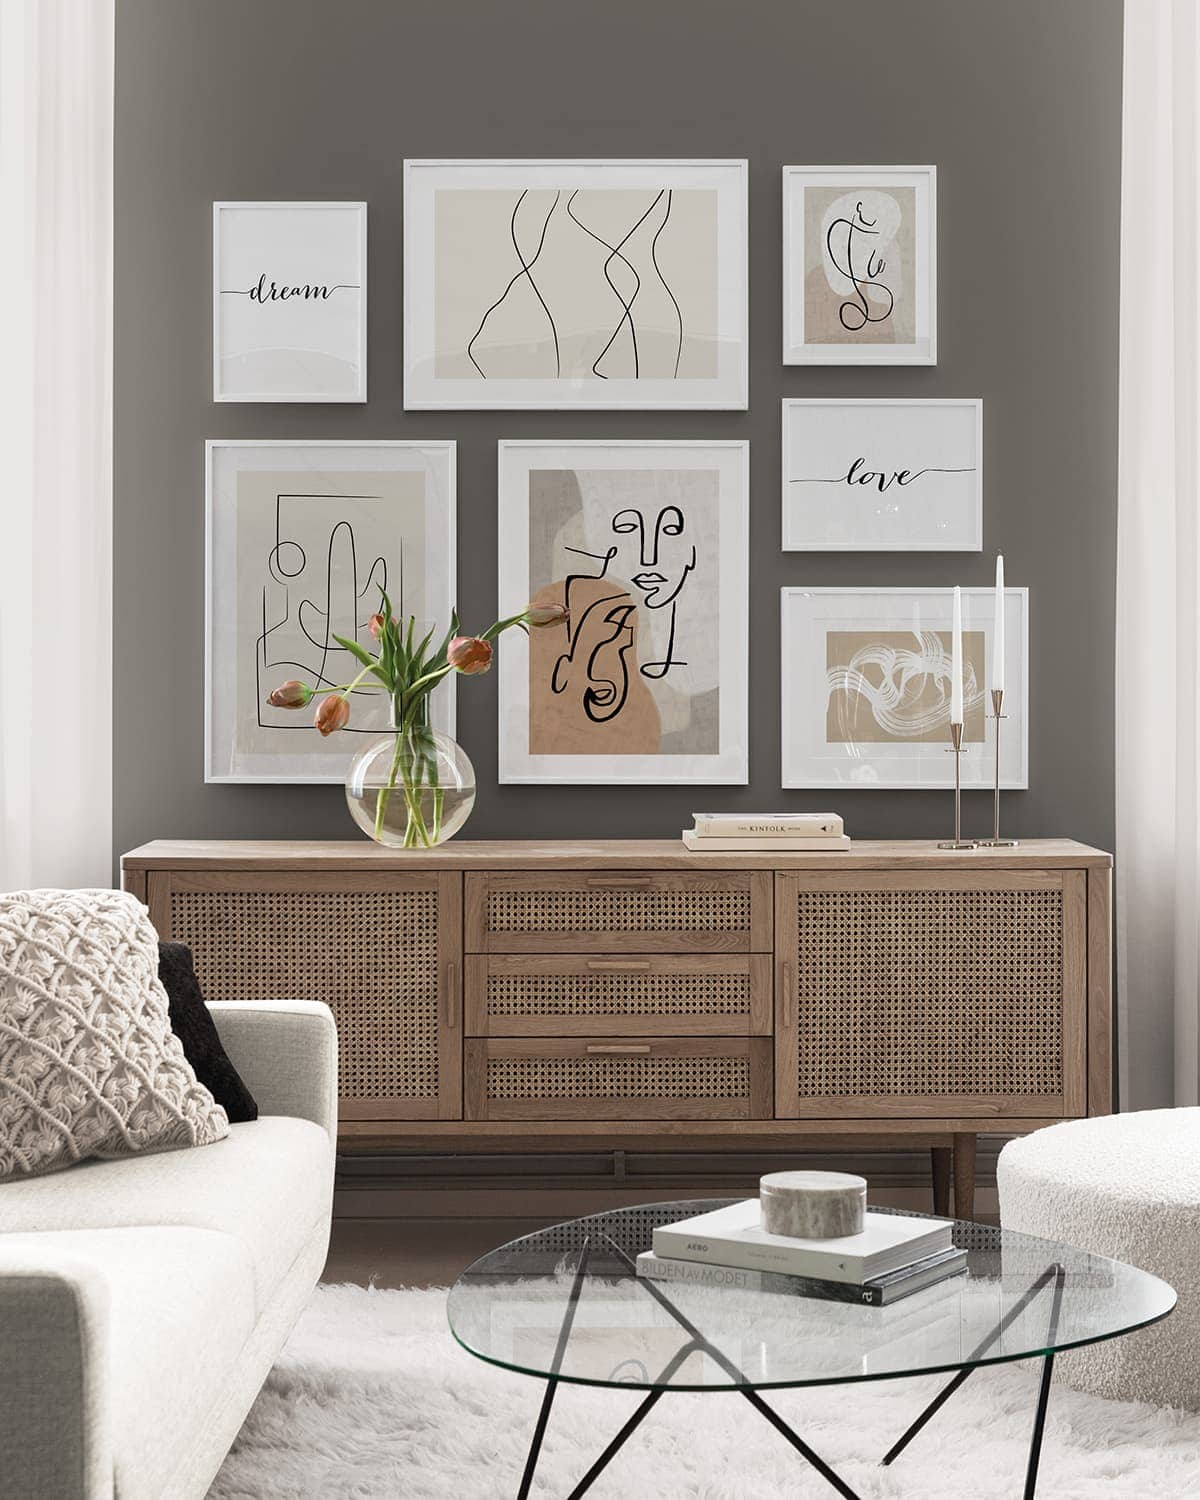 desenio minimalist artworks gallery wall on olive green wall in living room with rattan sideboard